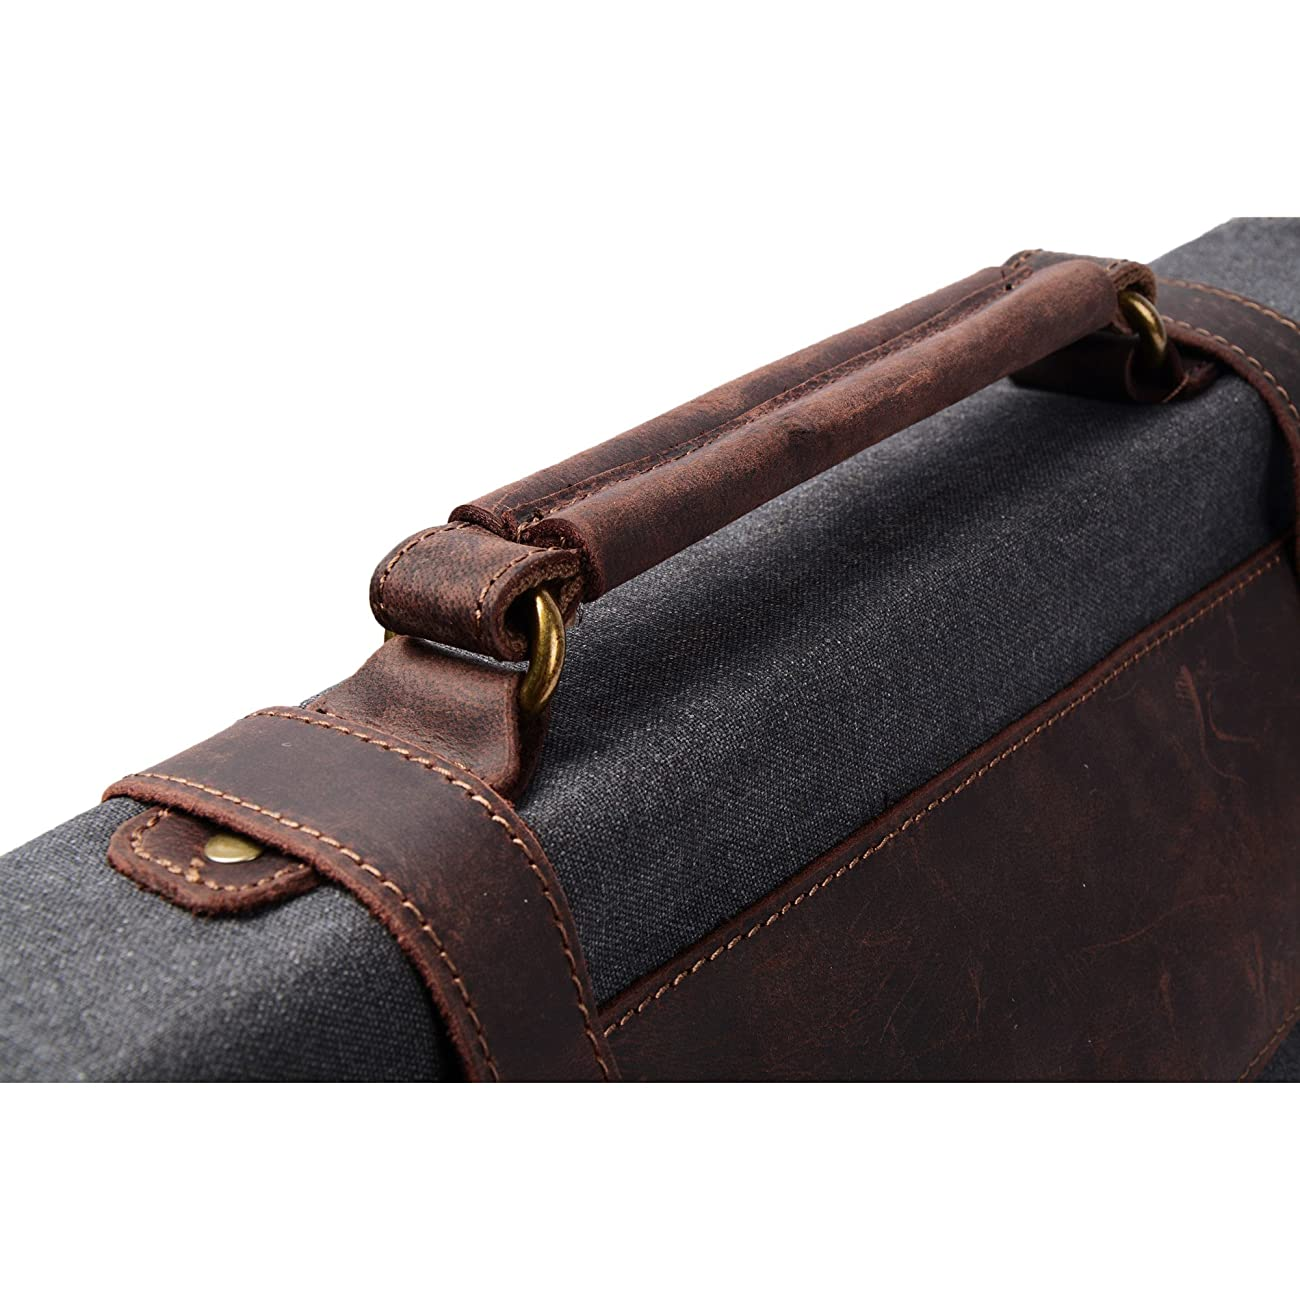 S ZONE Vintage Canvas Leather Messenger Traveling Briefcase Shoulder Laptop Bag 5